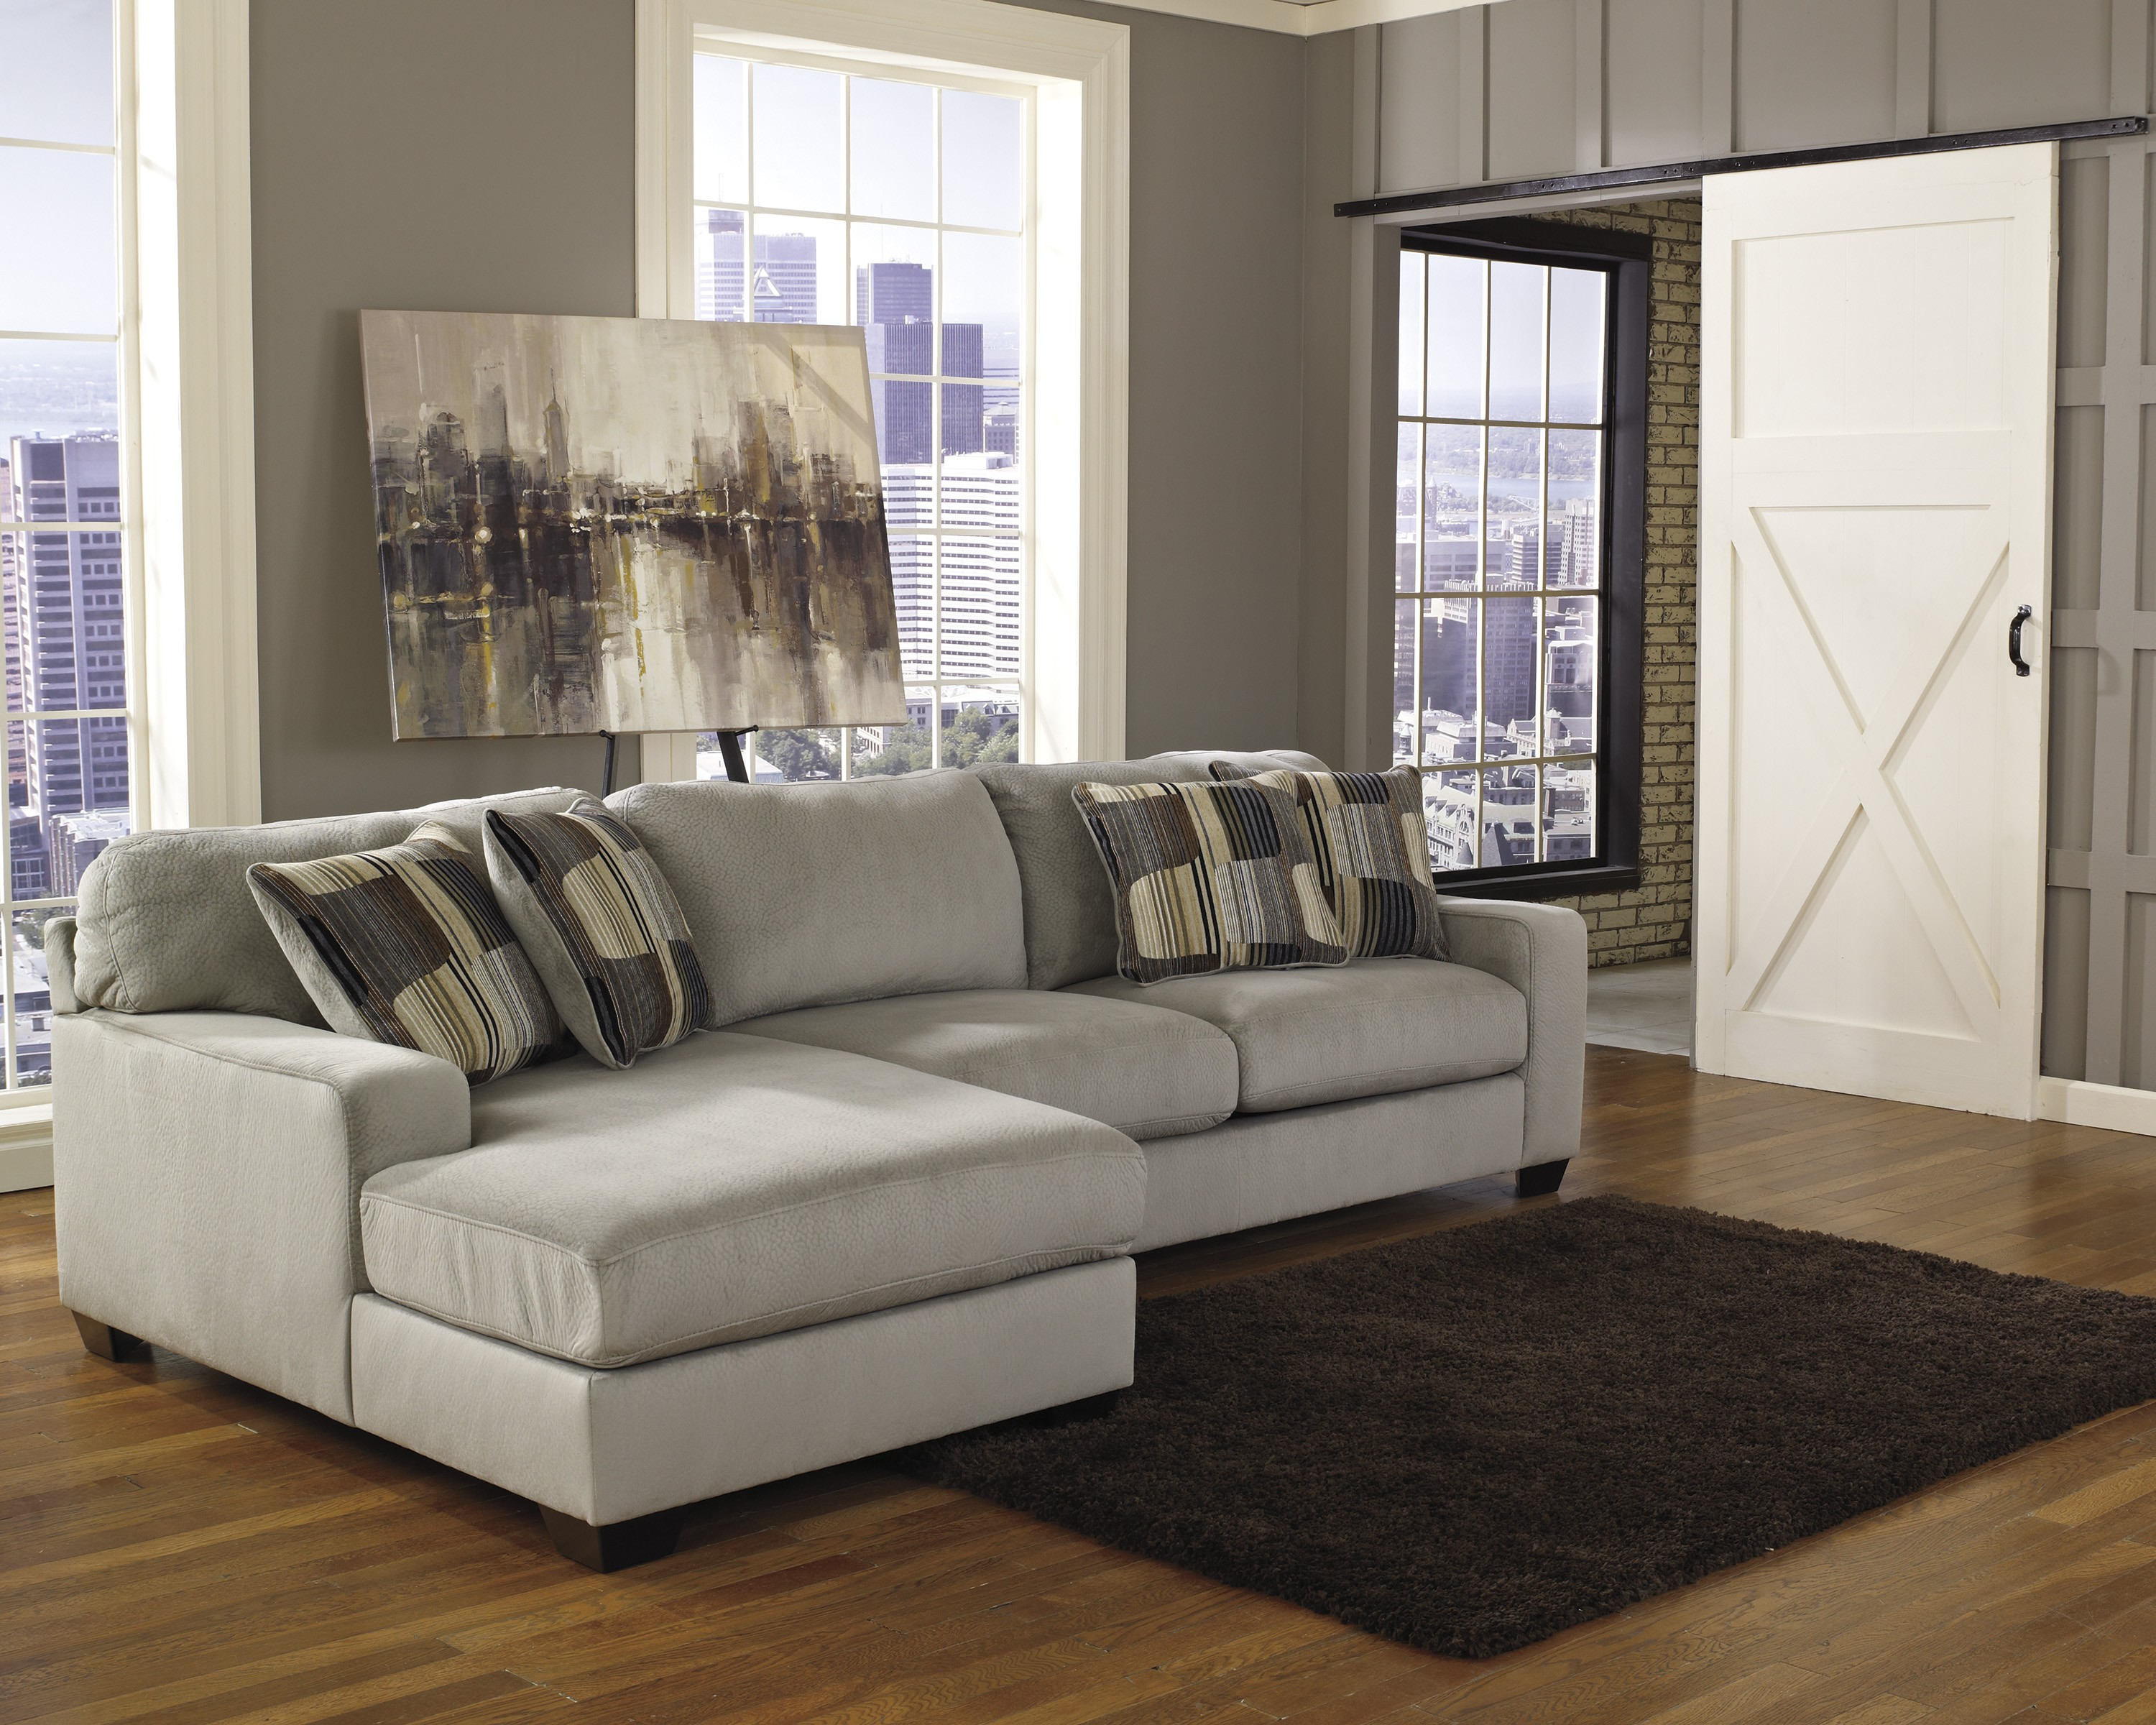 grey sectional sleeper sofa on wooden floor plus dark brown carpet matched  with wall Decorating Comfortable Sectional Sleeper Sofa For Living Room